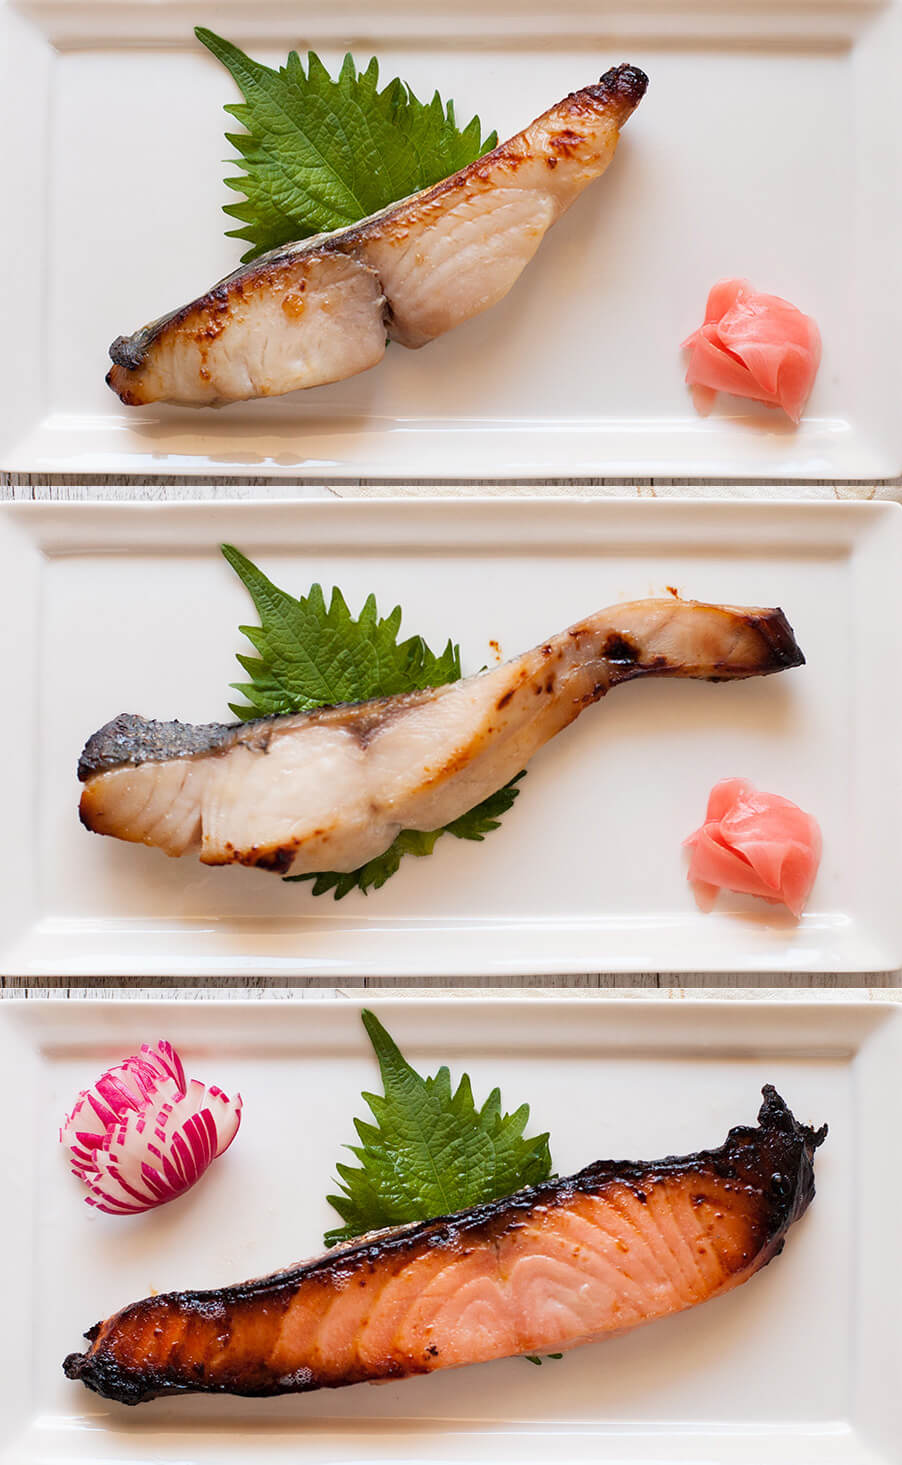 Saikyo Yaki Fish showing three different grilled fish.